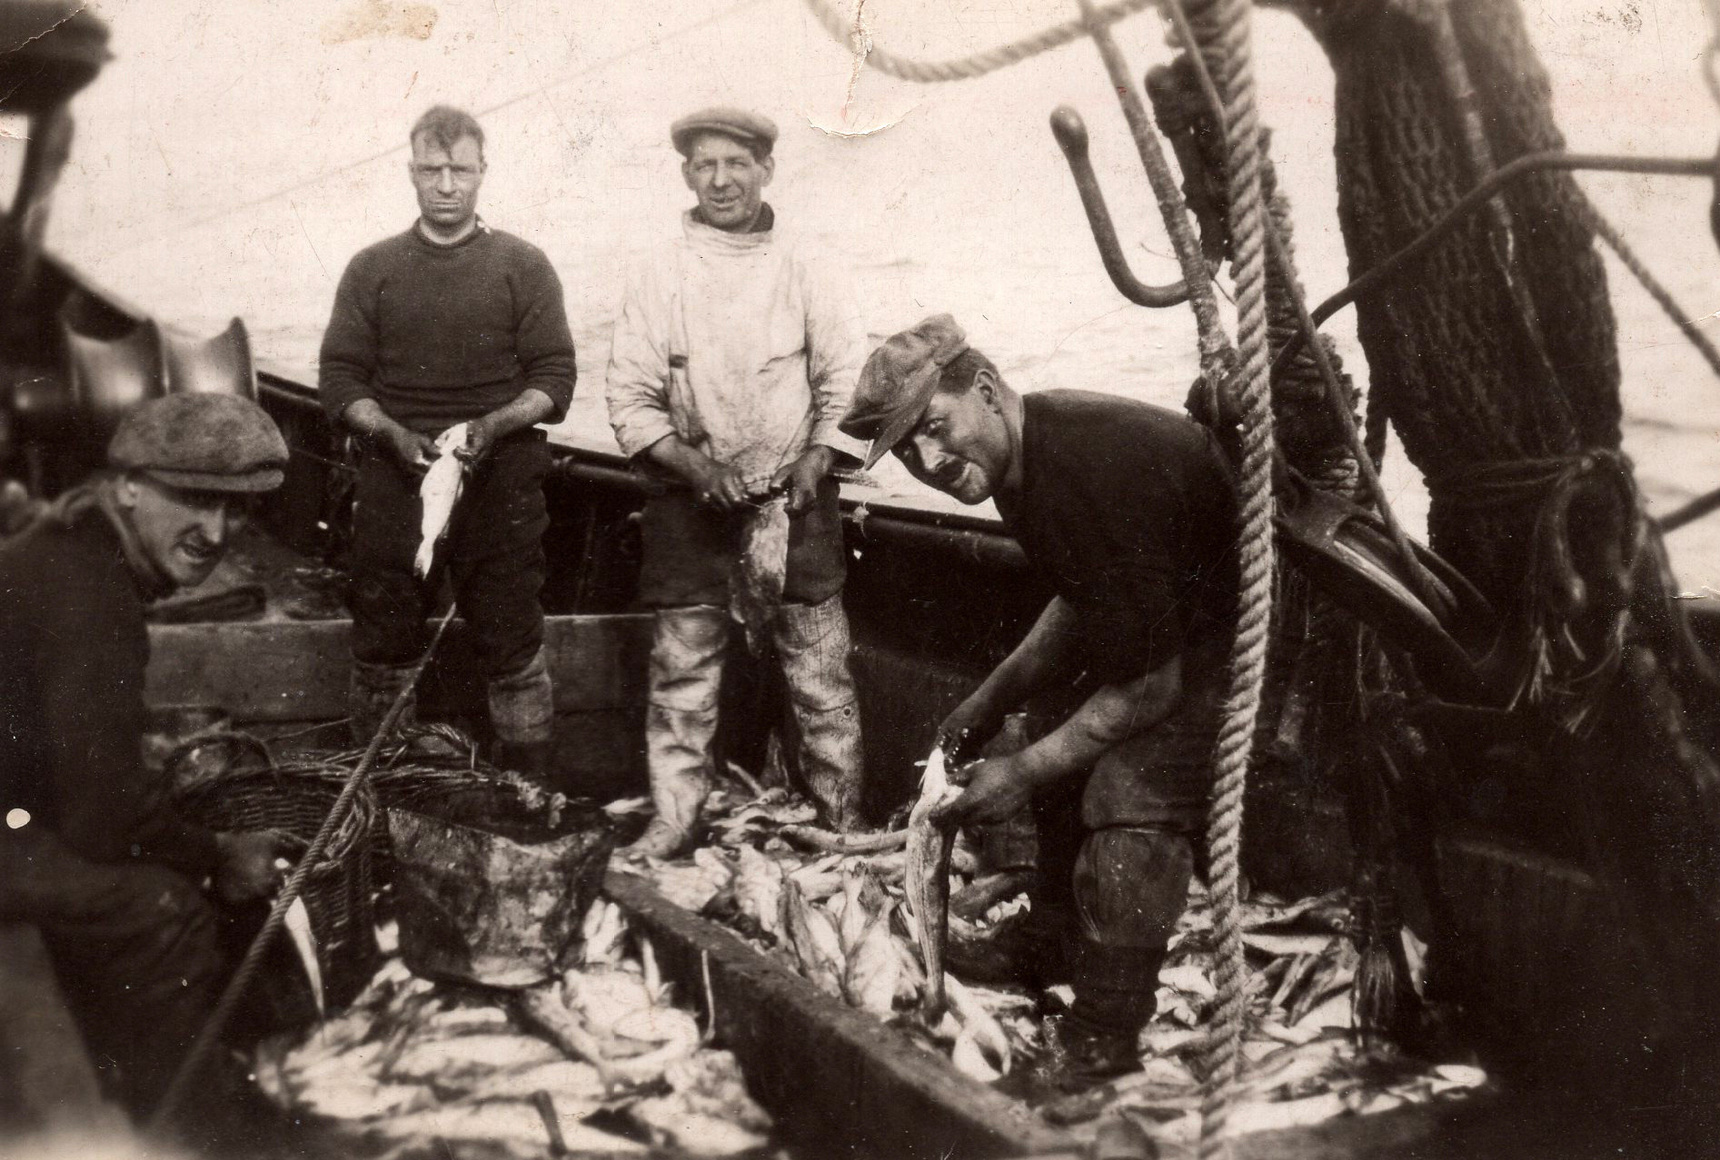 Fishermen With Their Catch On Board Boat At Newhaven Harbour 1937